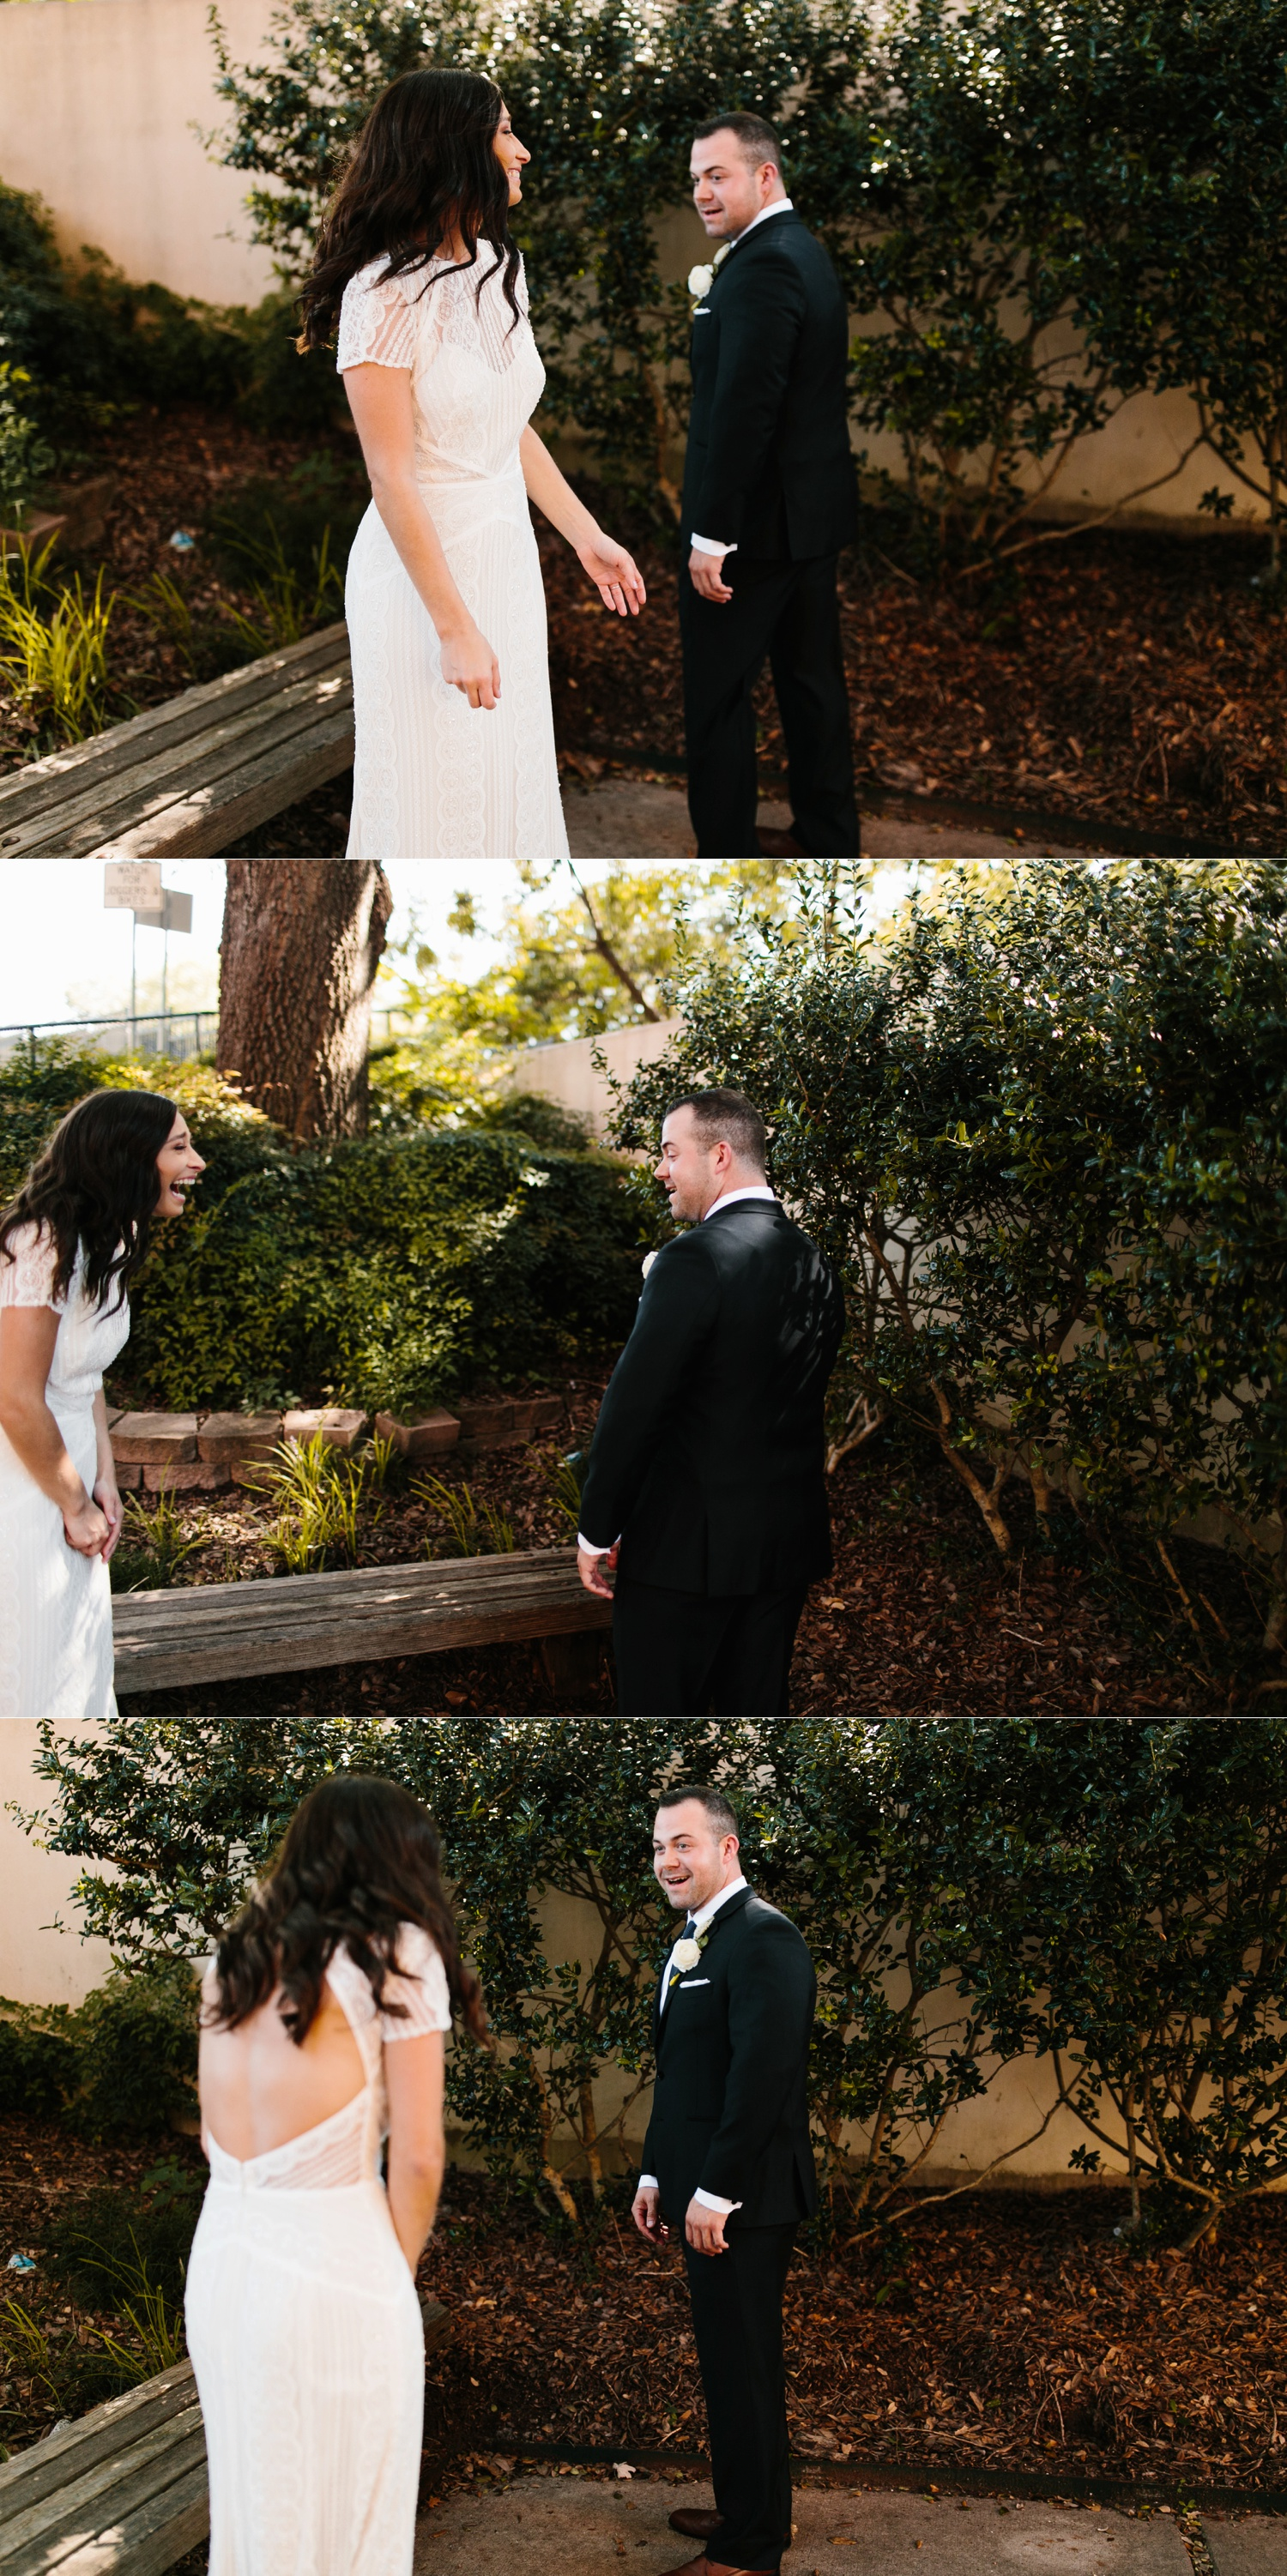 Kadee + Tyler | a raw, emotional wedding at the Filter Building on White Rock Lake in Dallas, TX by North Texas Wedding Photographer, Rachel Meagan Photography 056